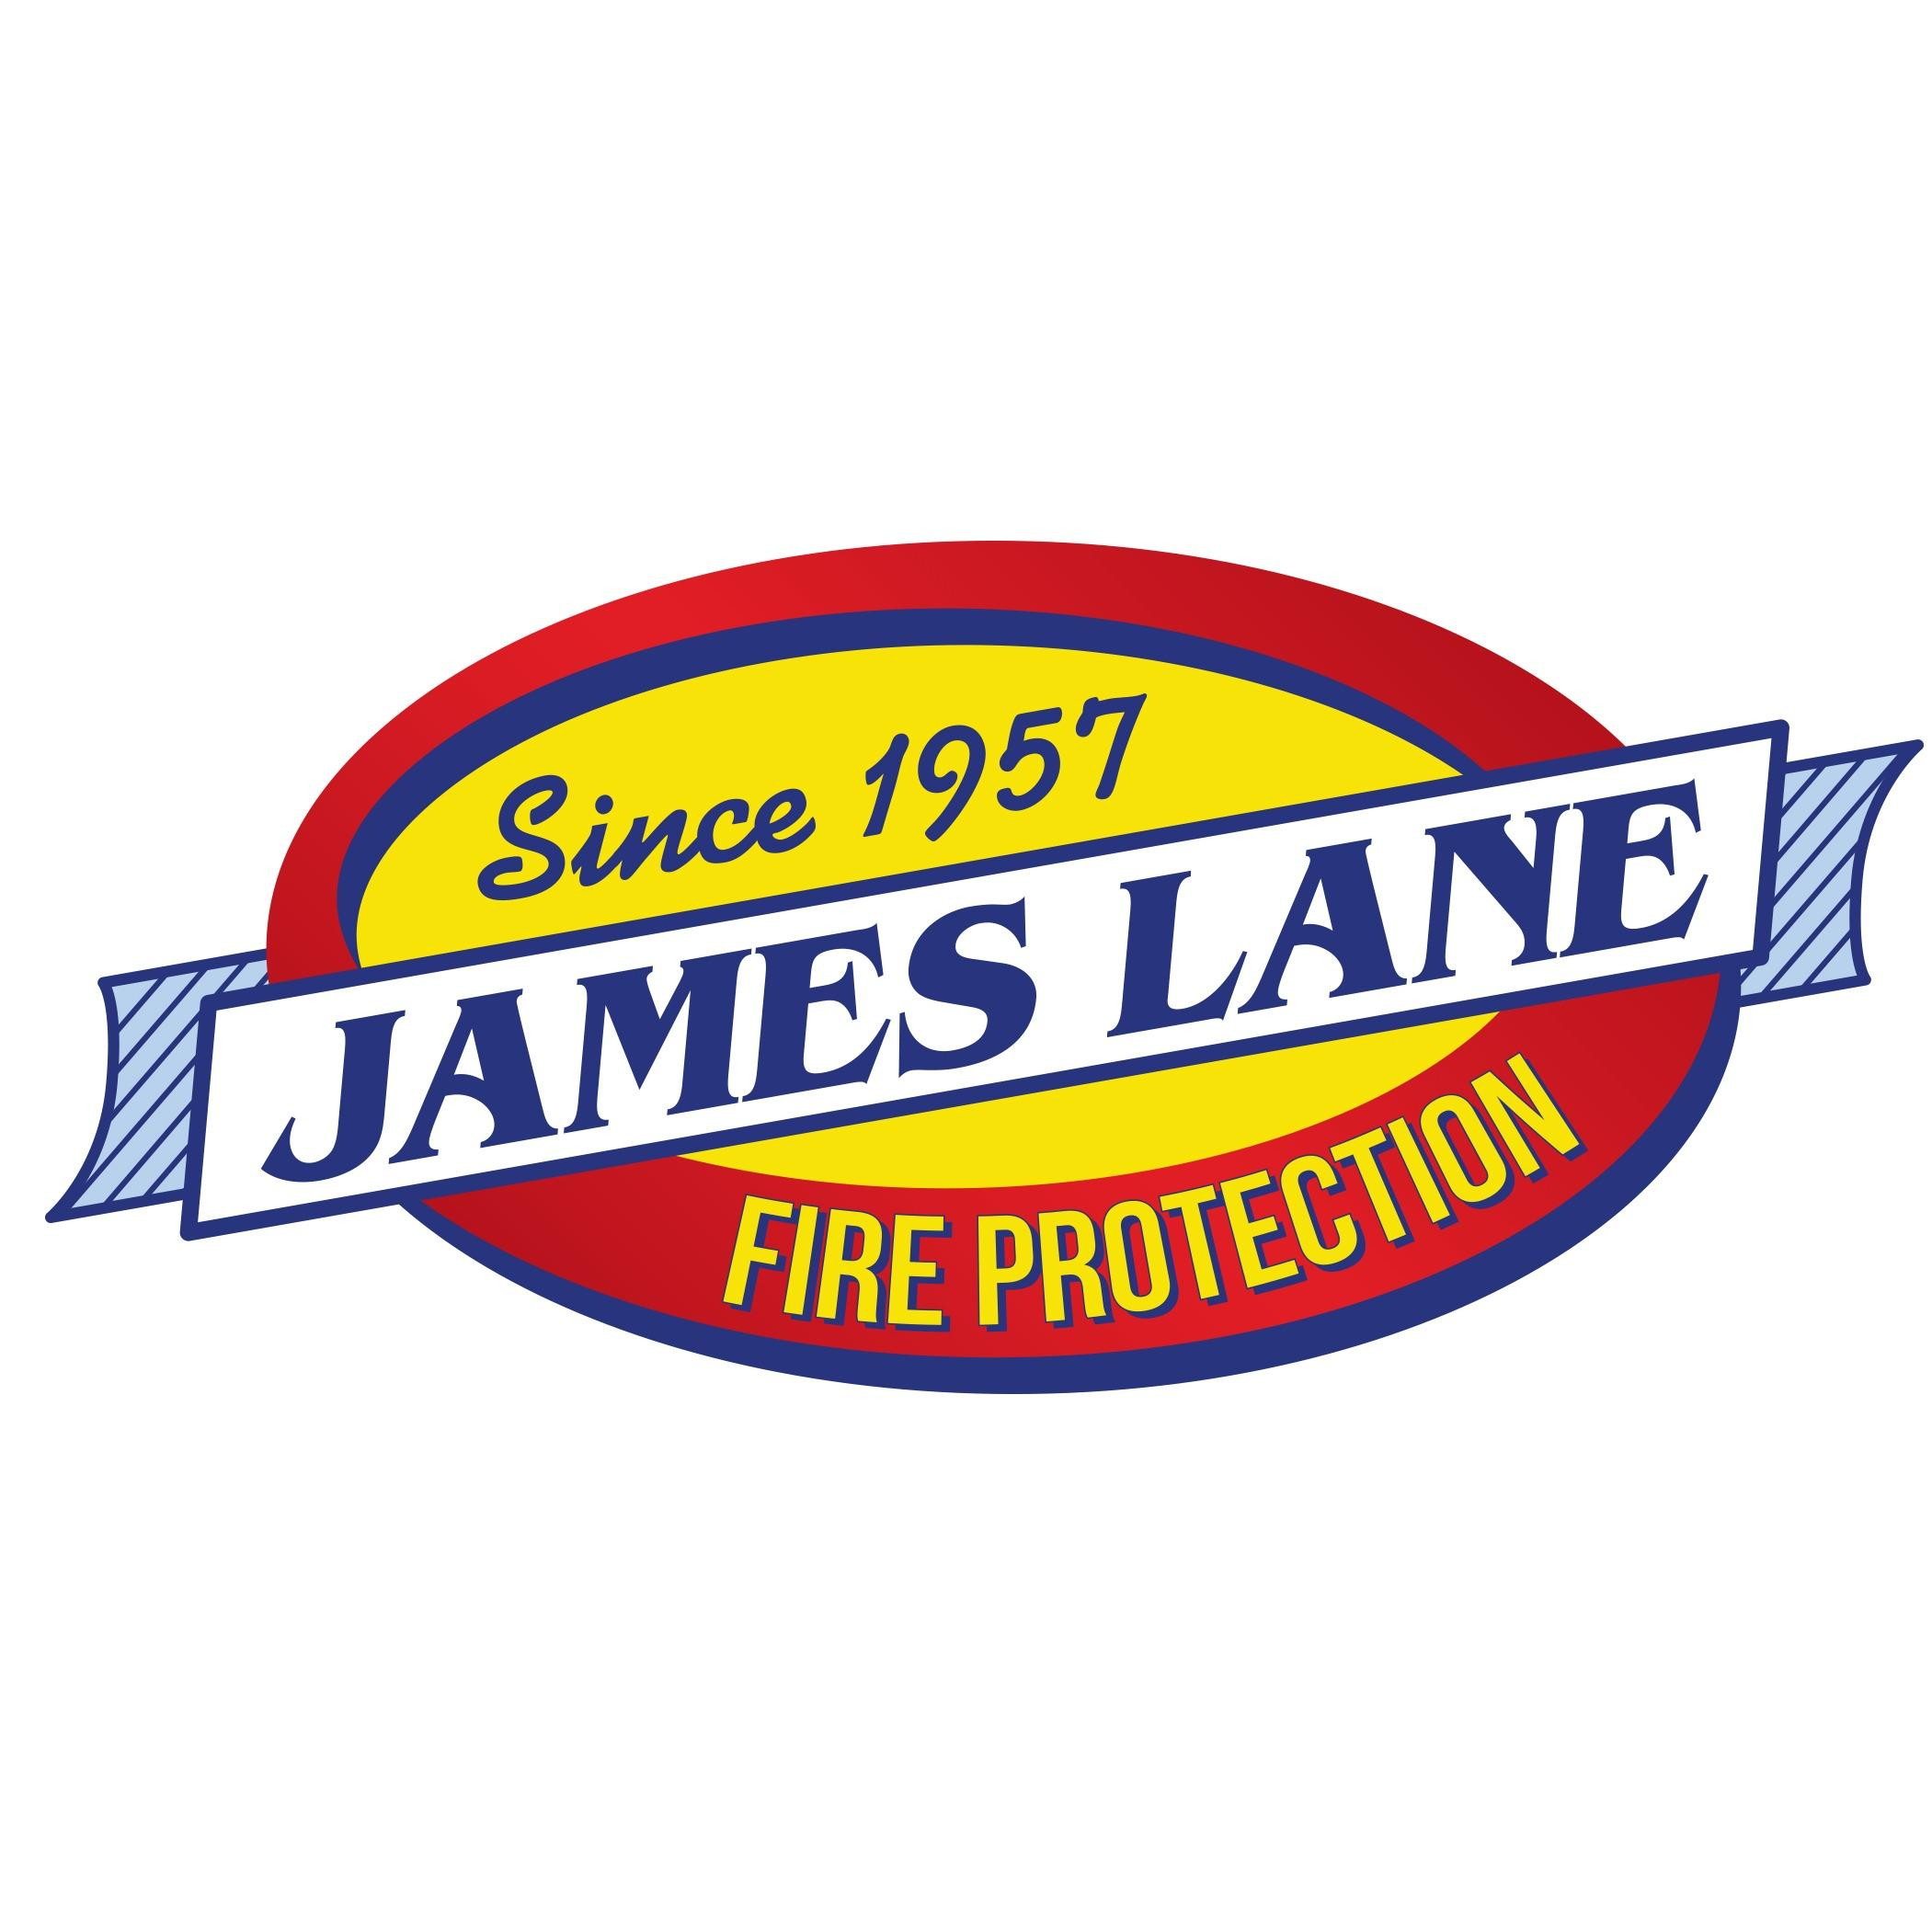 James Lane Air Conditioning and Plumbing image 3